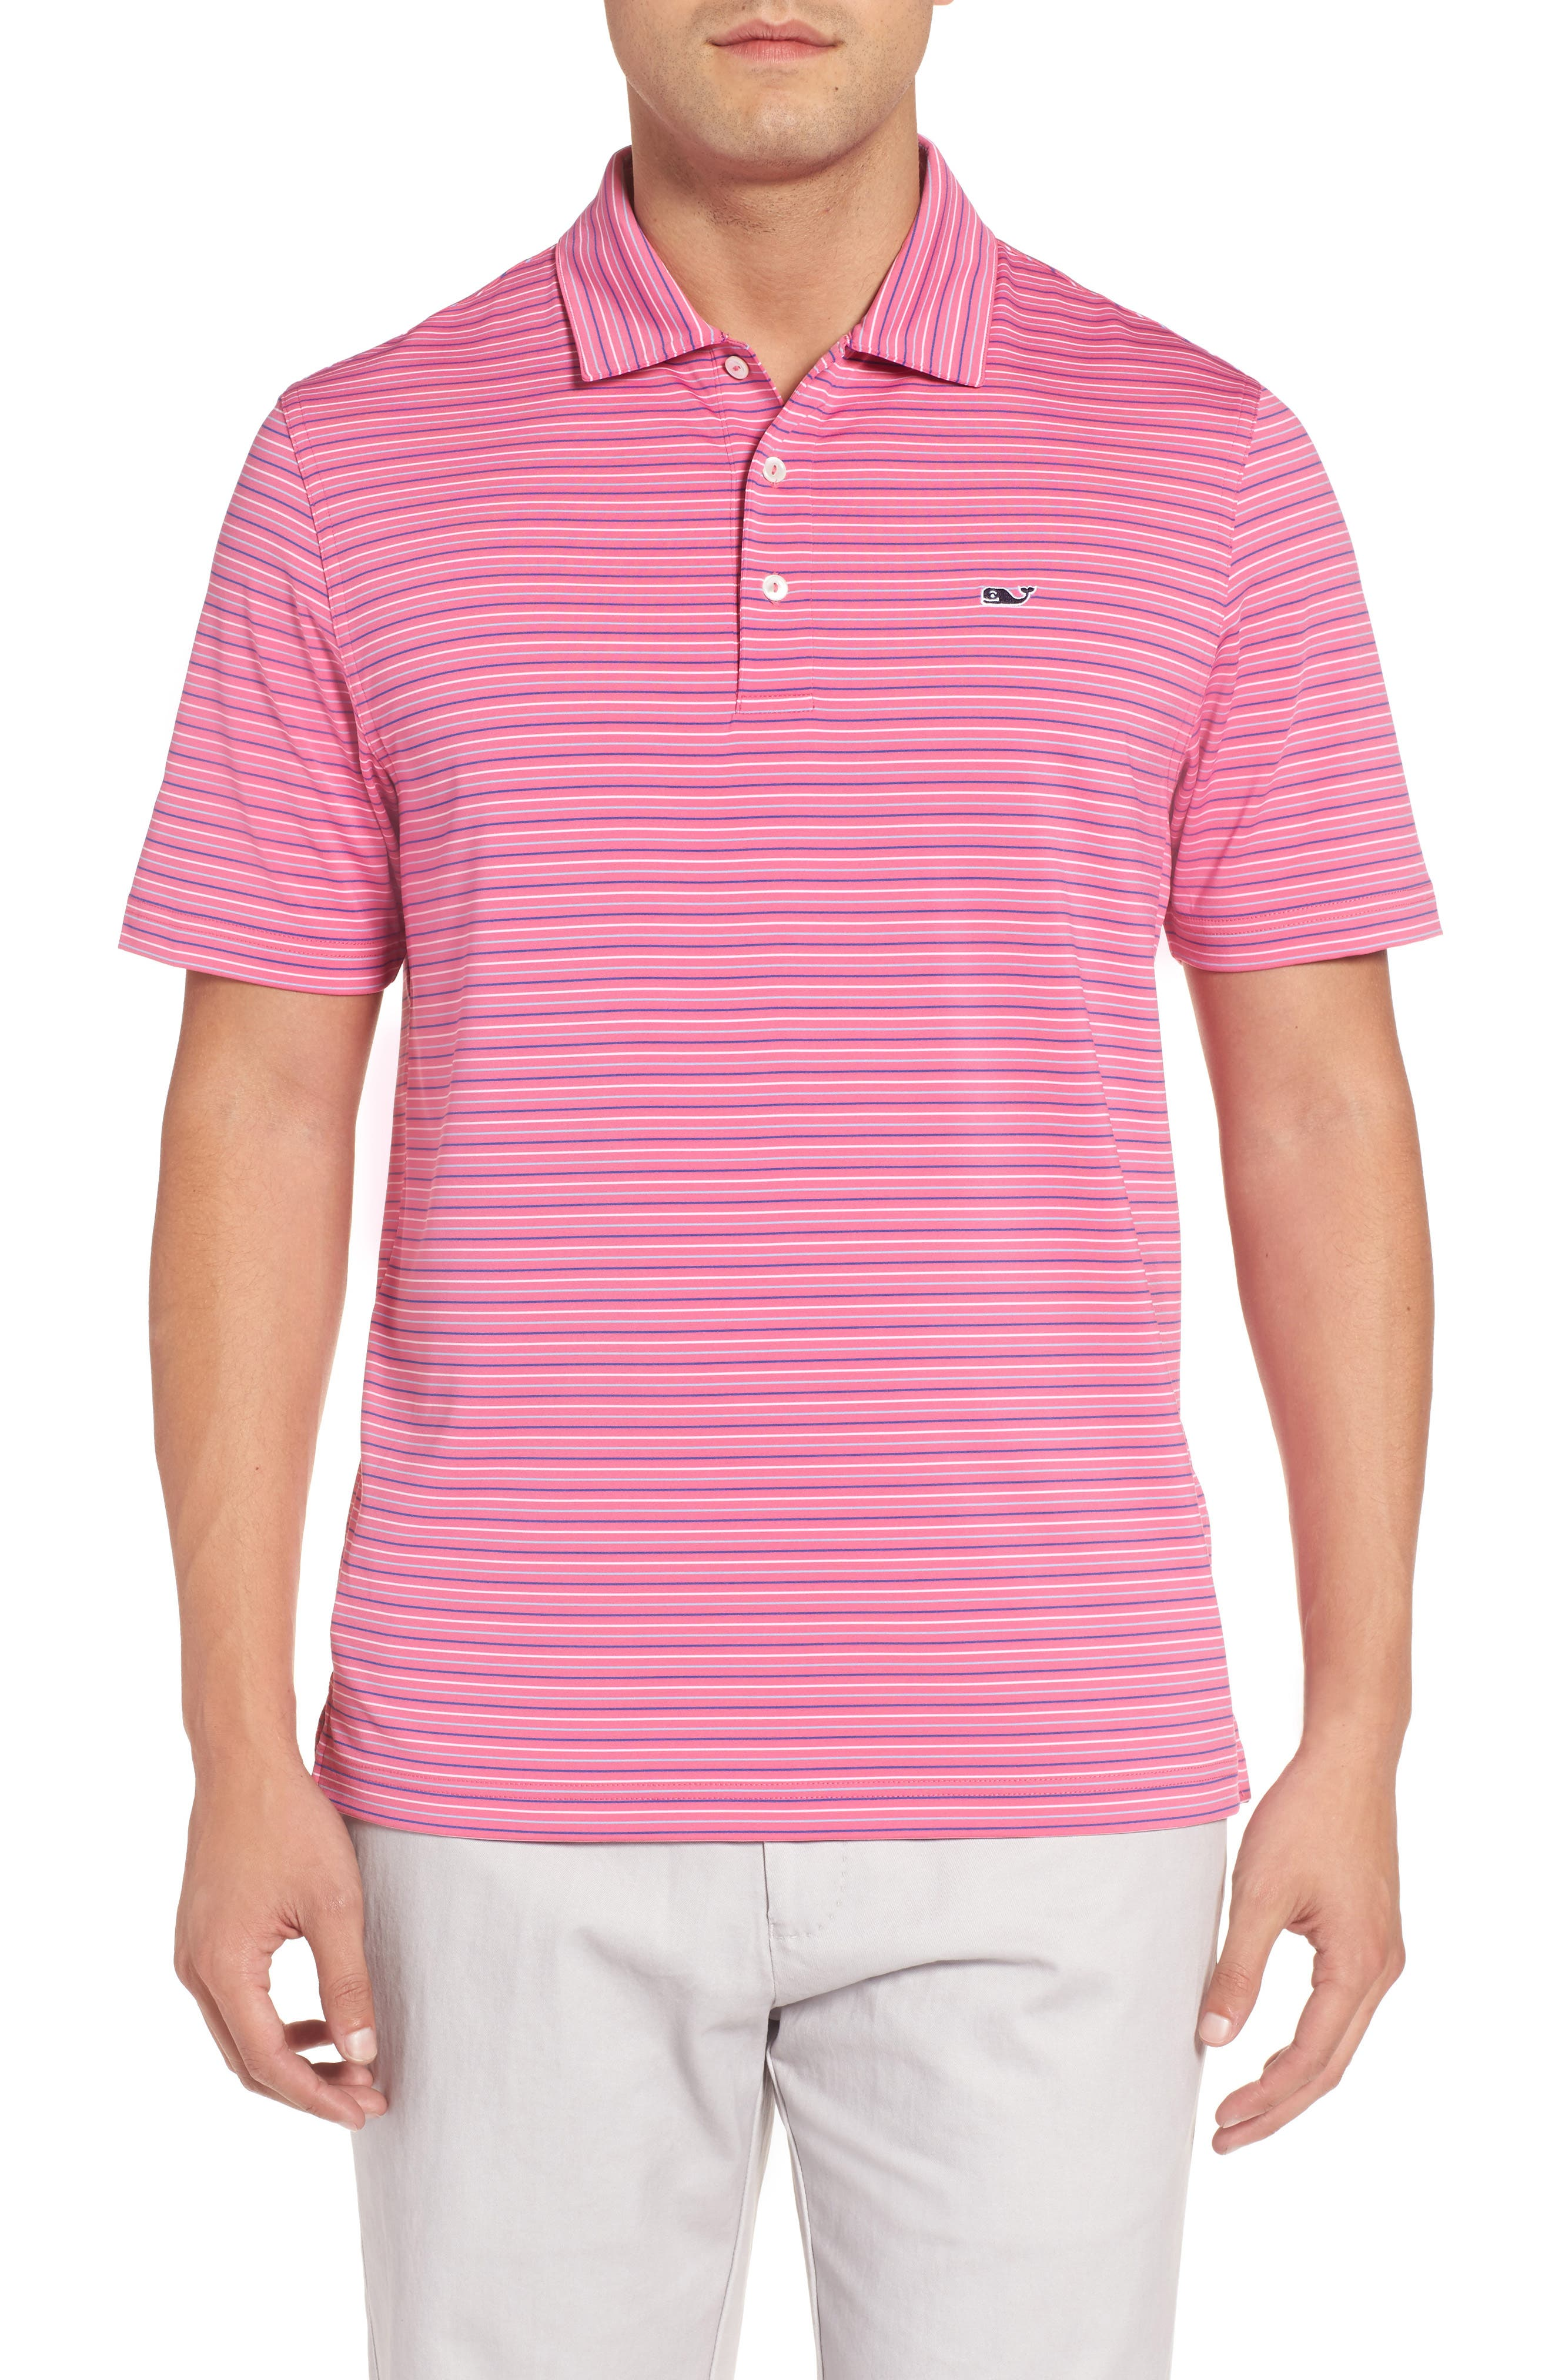 vineyard vines Multicolor Stripe Polo